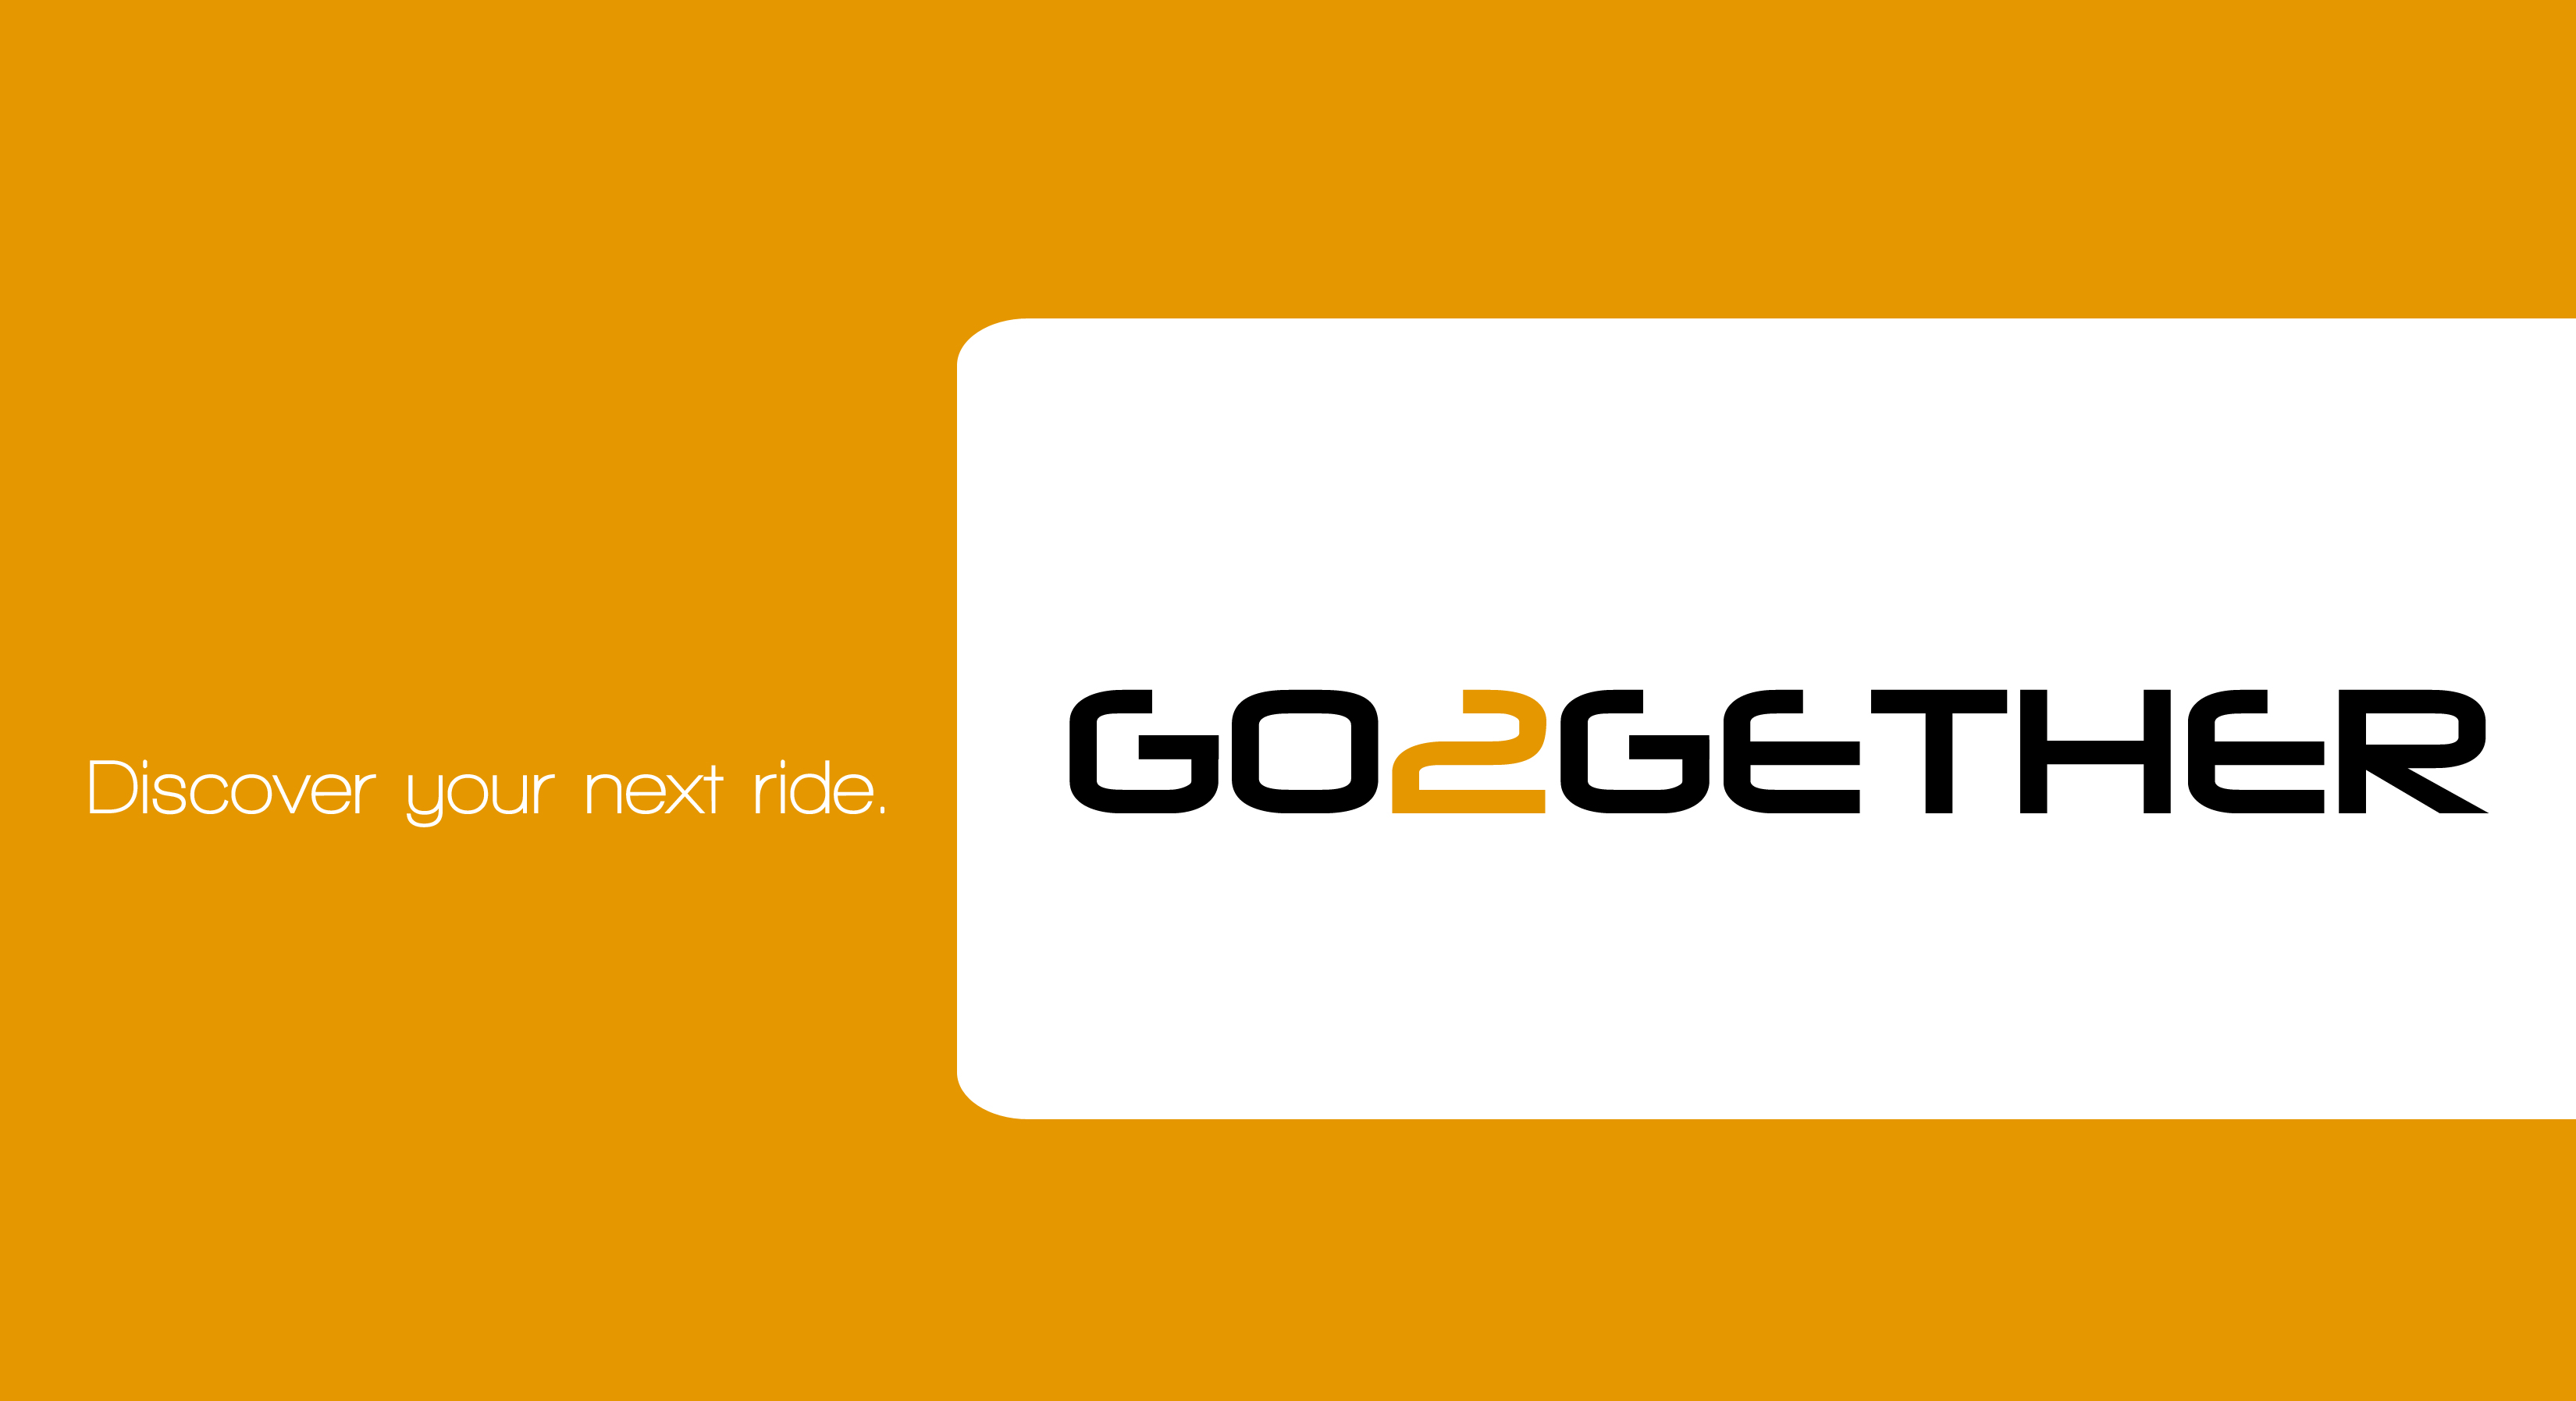 Logo Design by Lama Creative - Entry No. 63 in the Logo Design Contest Captivating Logo Design for GO2GETHER.